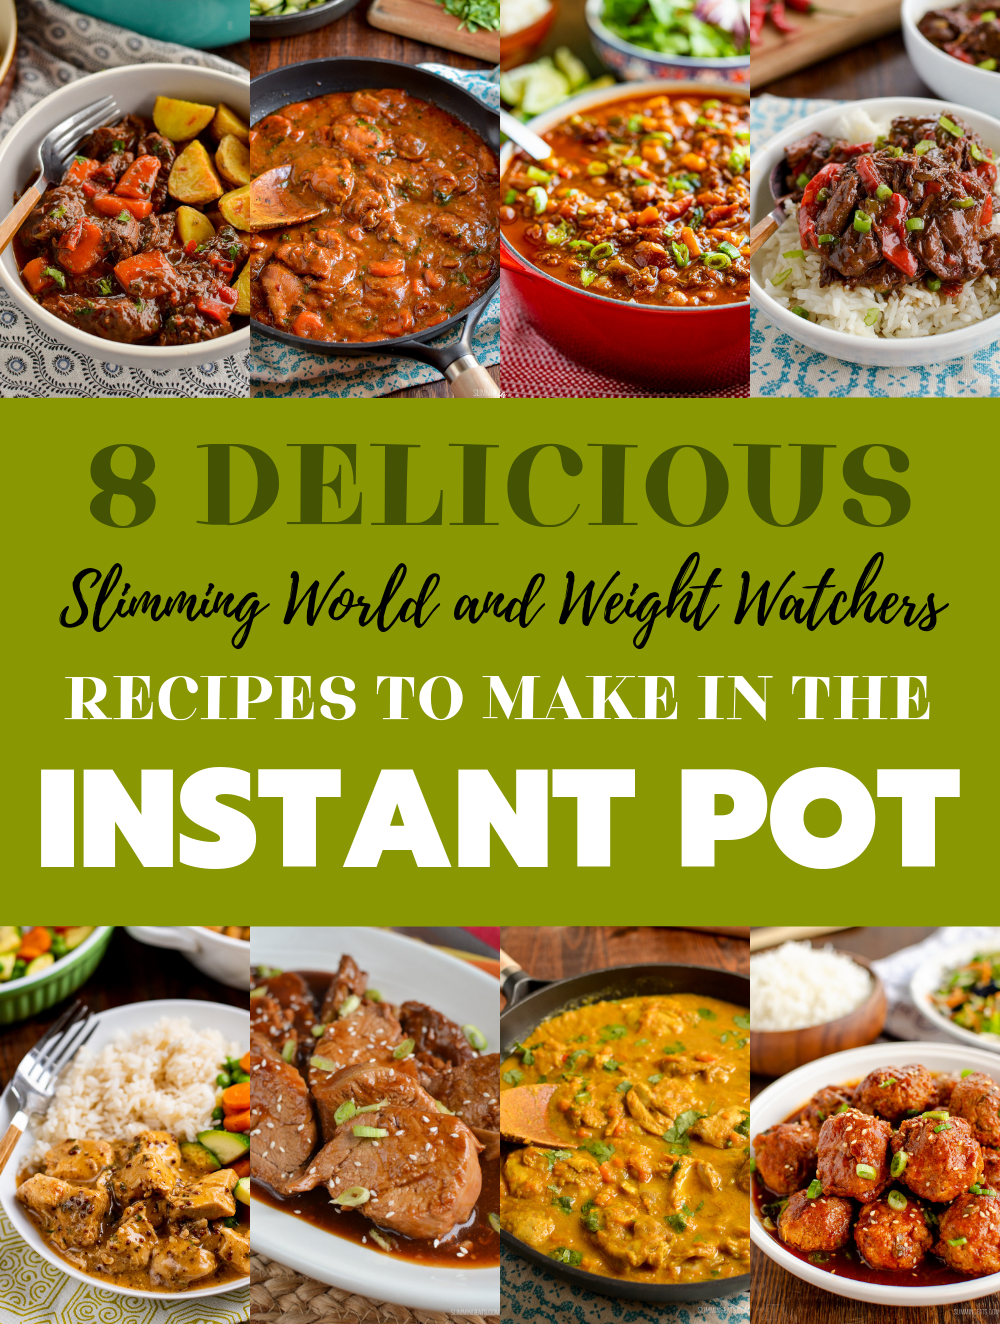 slimming world and weight watchers instant pot recipes